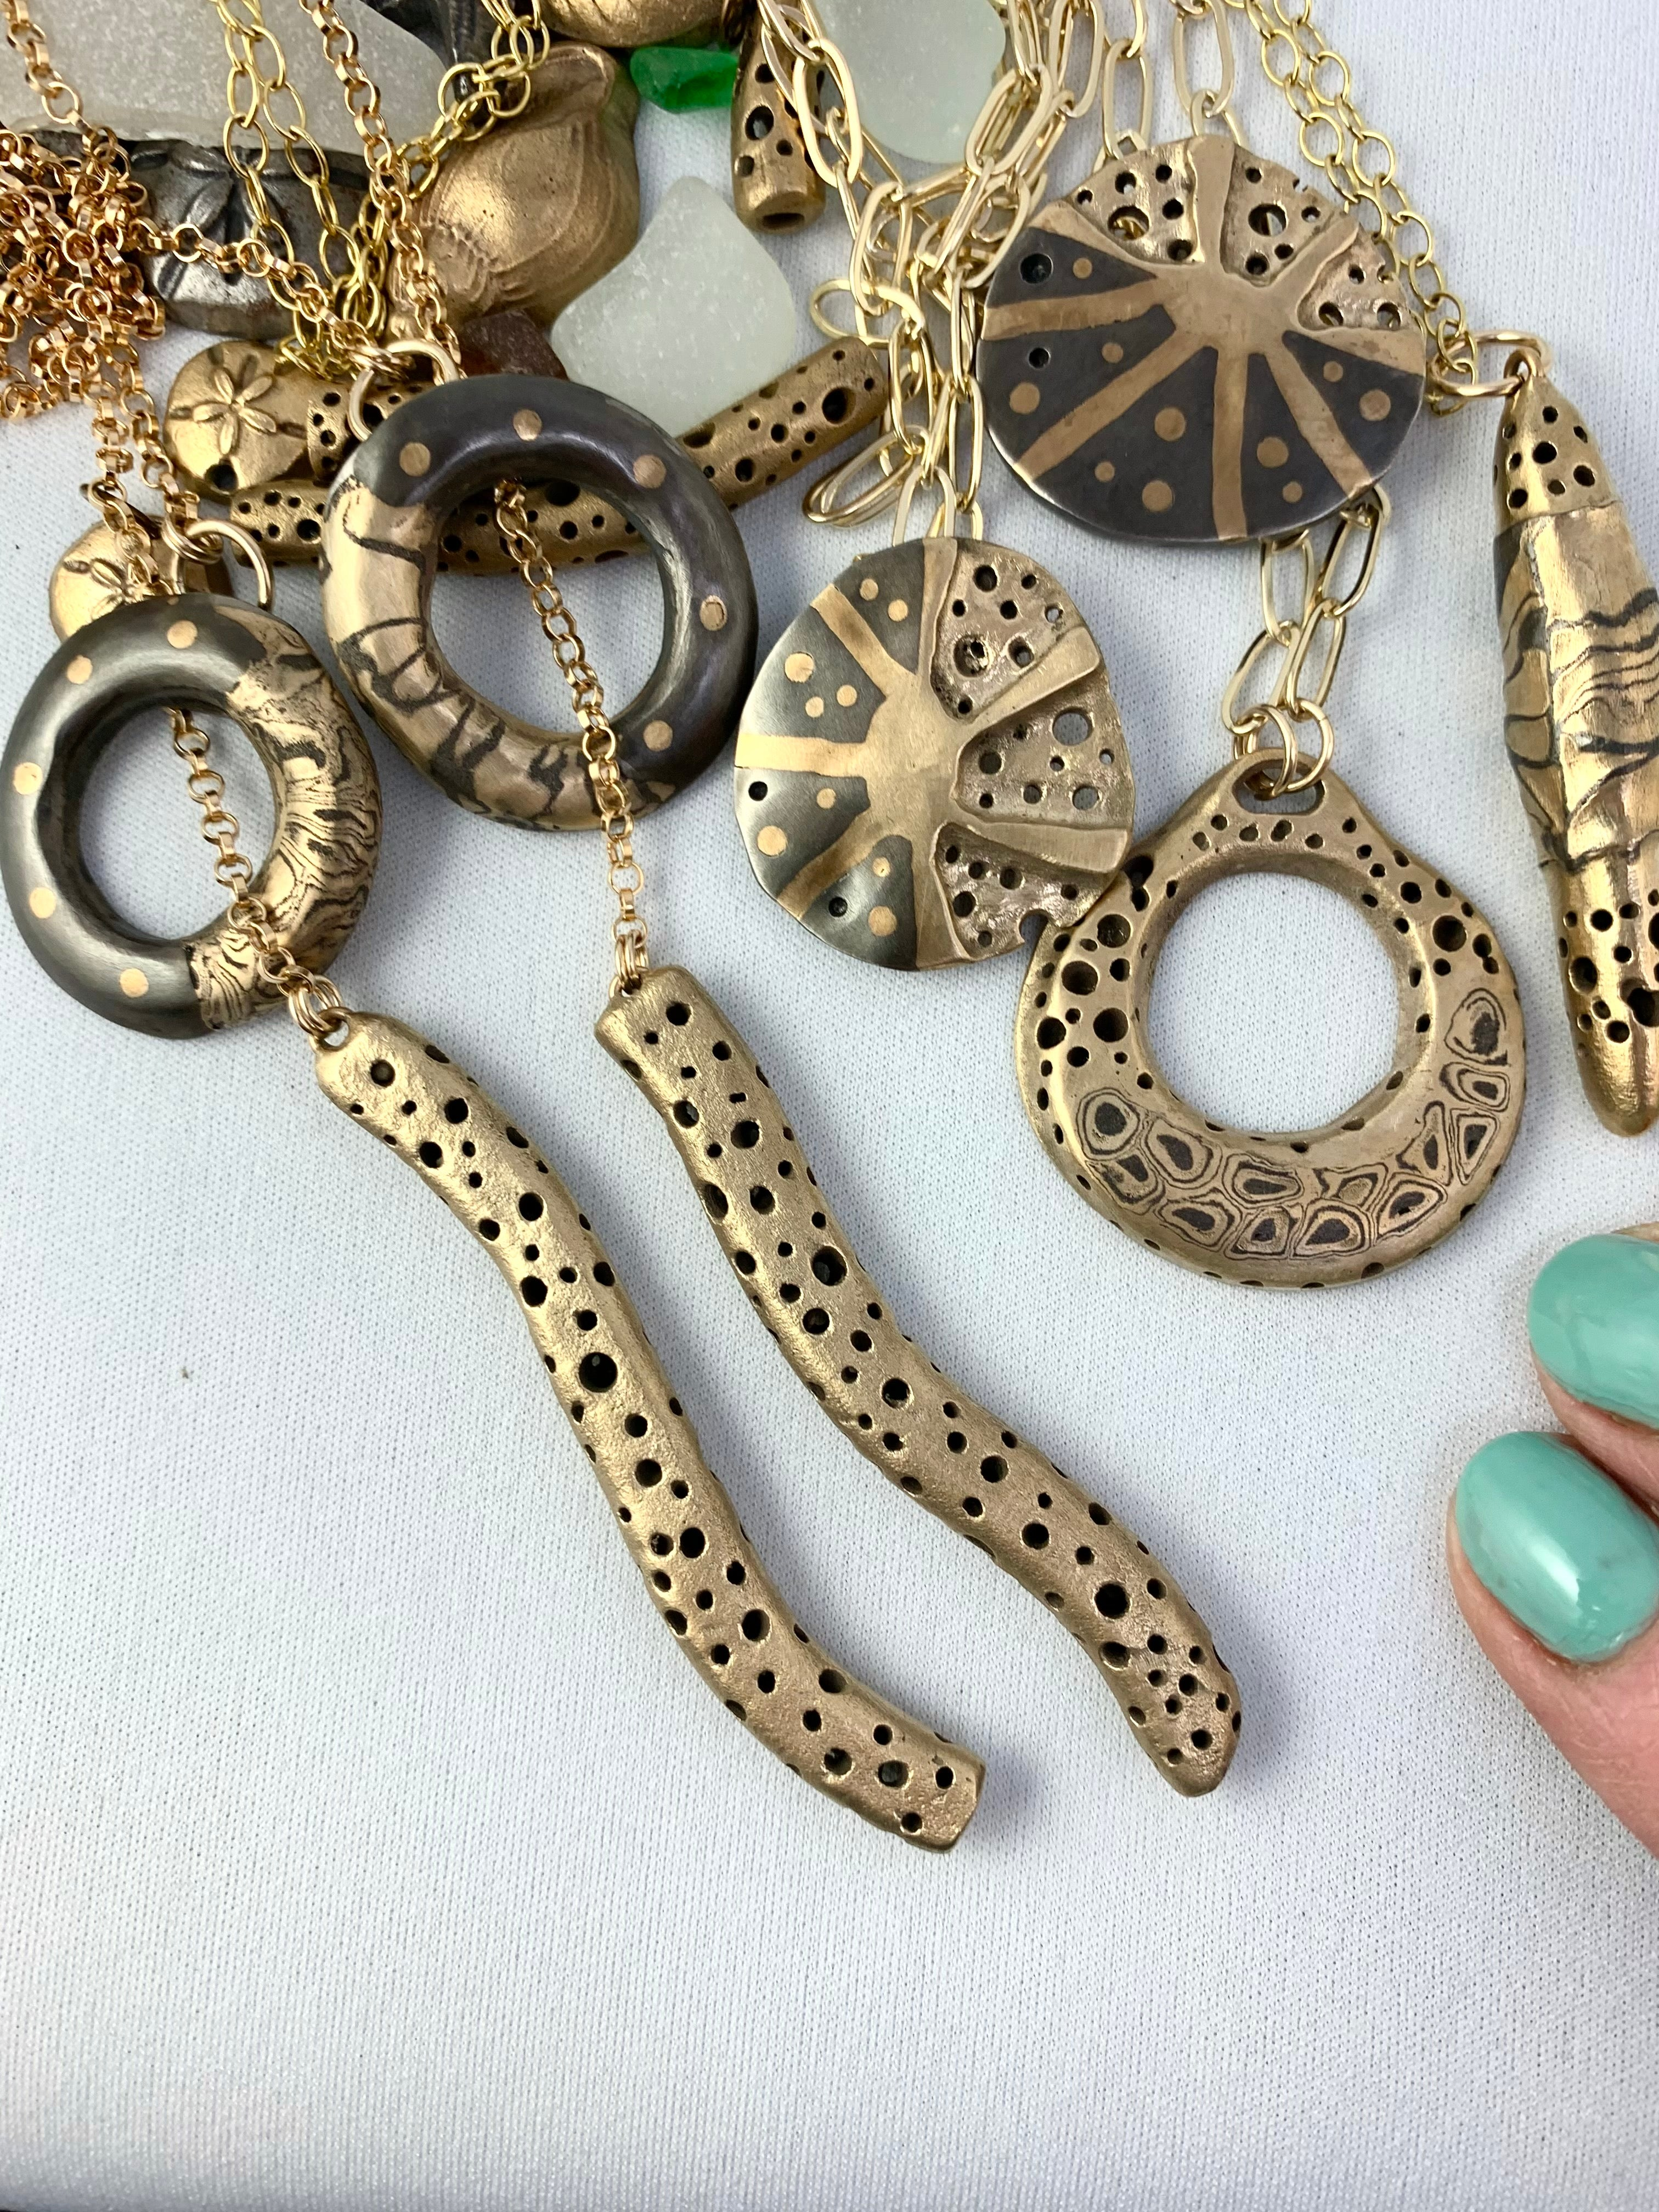 Artisan made bronze and steel new necklaces